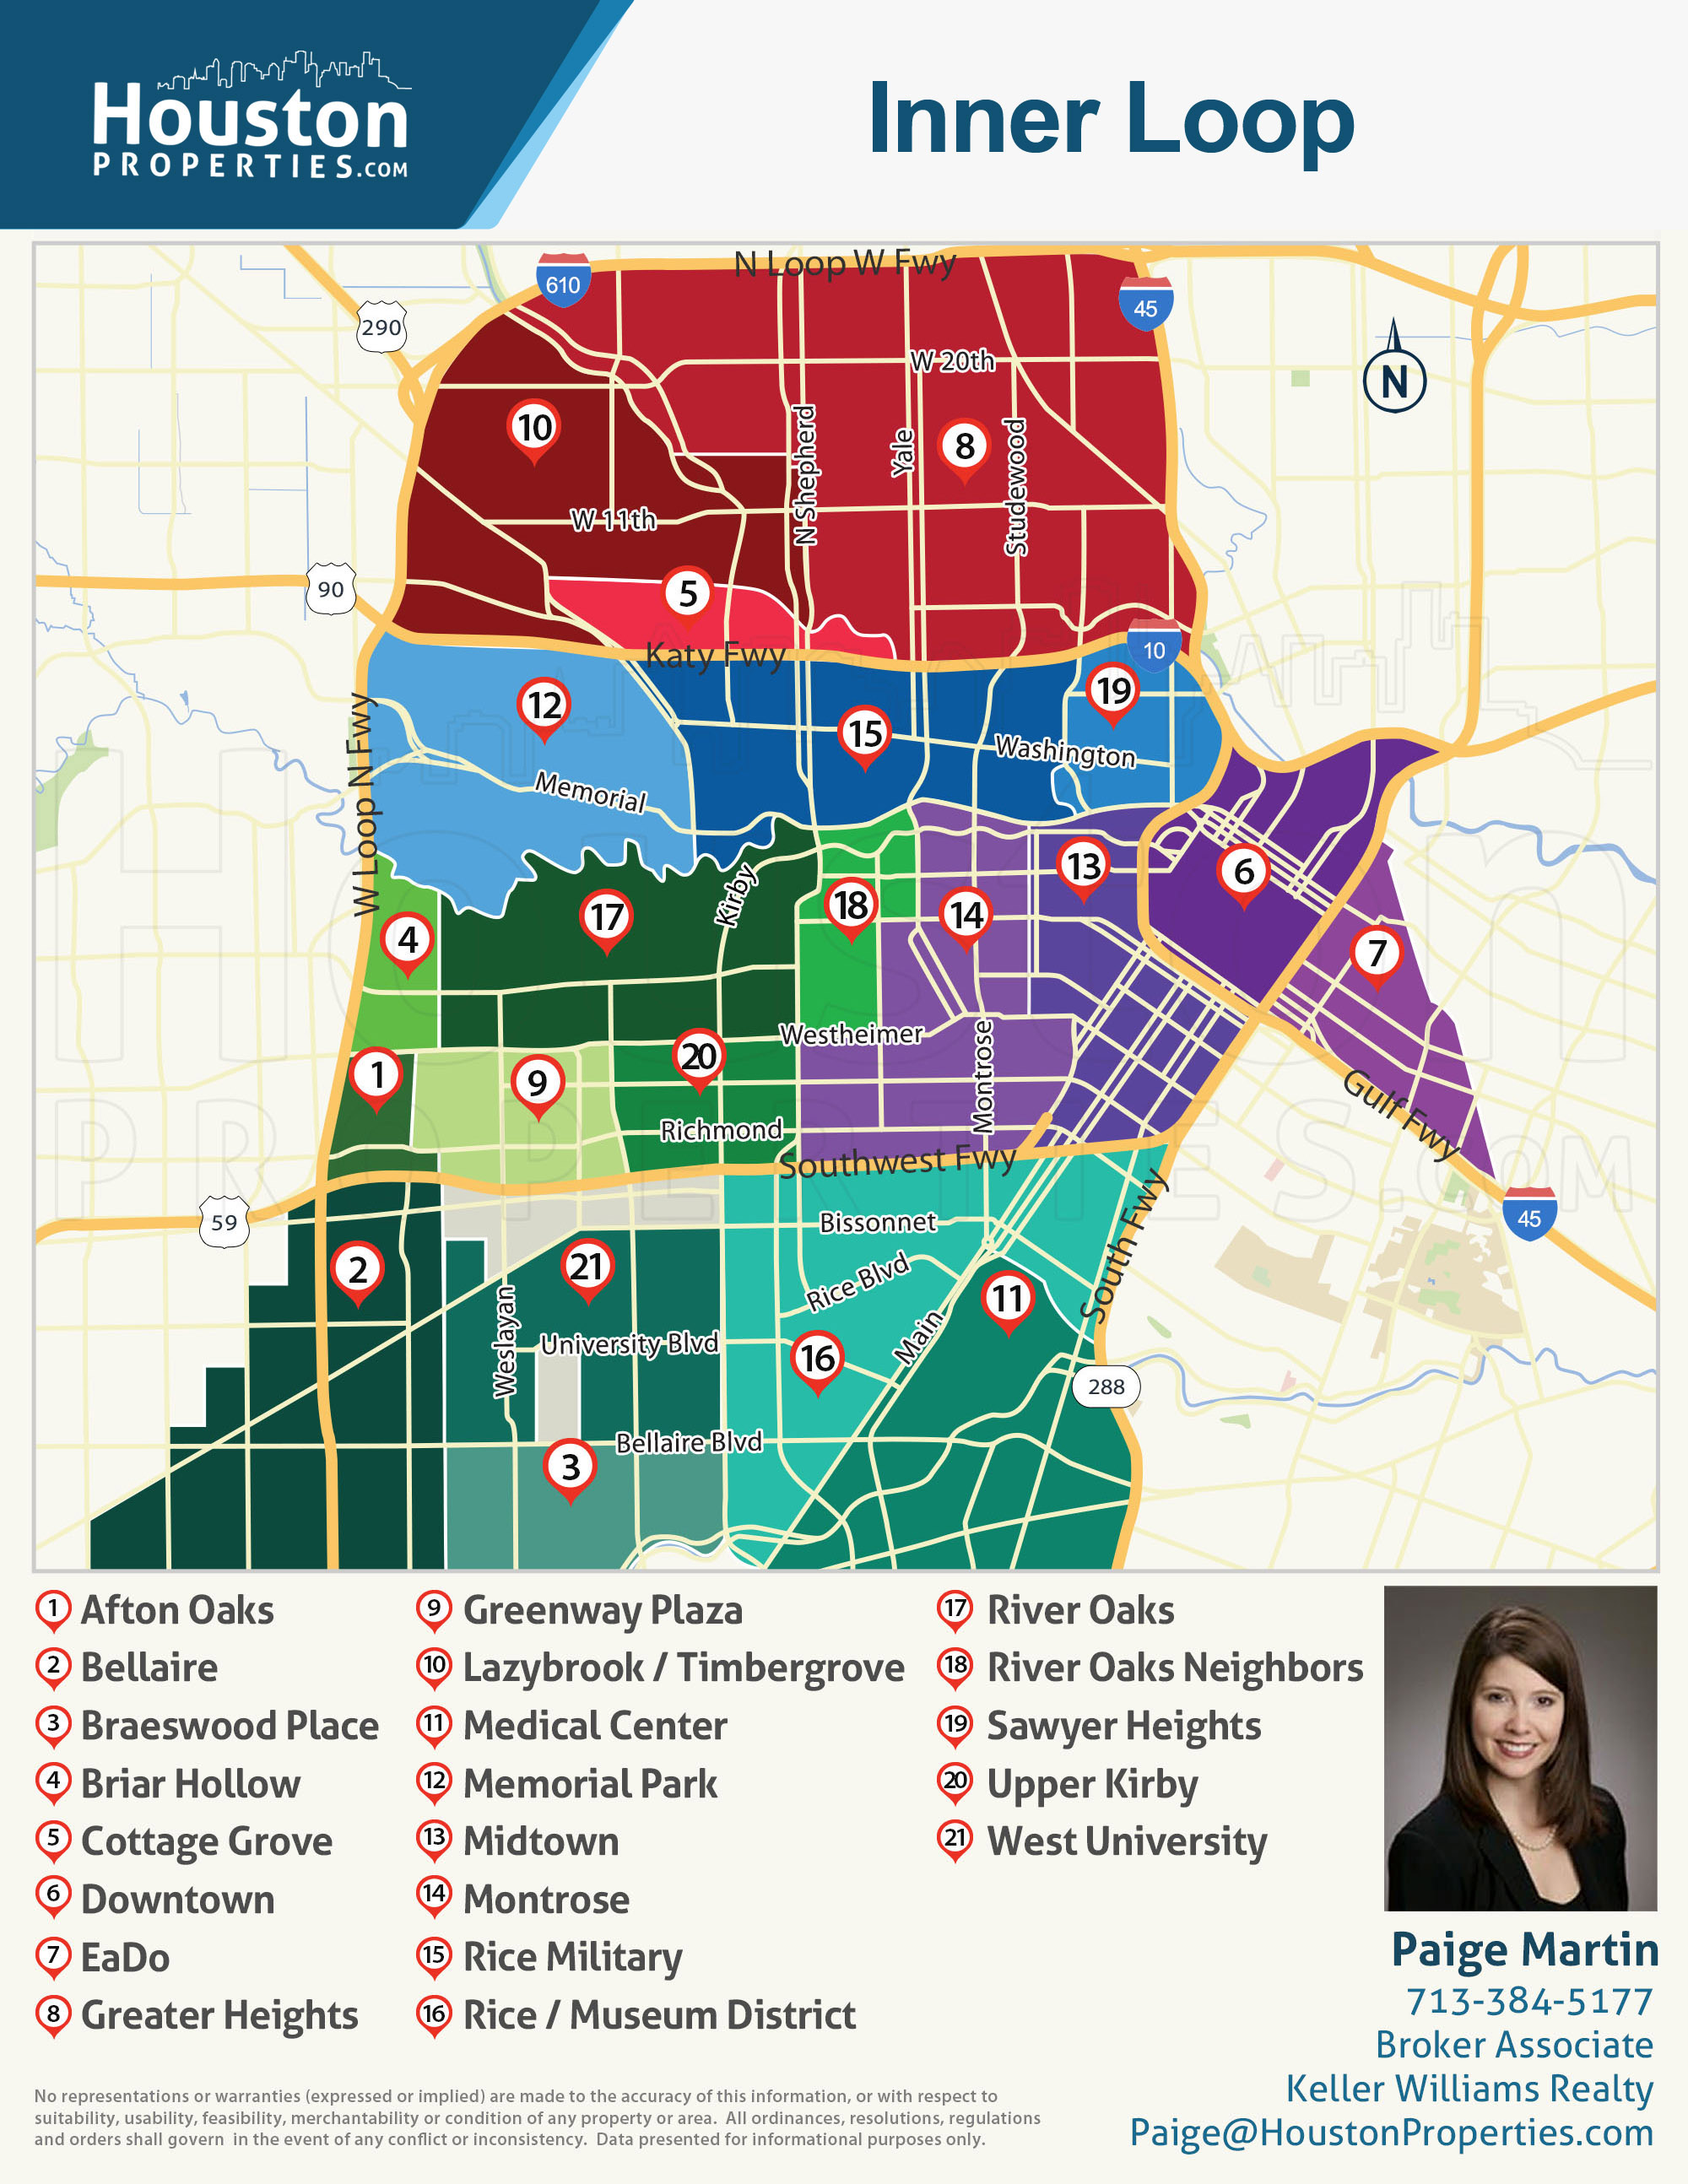 Map Of Houston Neighborhoods 2019 Update: 14 Best Inner Loop Houston Neighborhoods | Real  Map Of Houston Neighborhoods